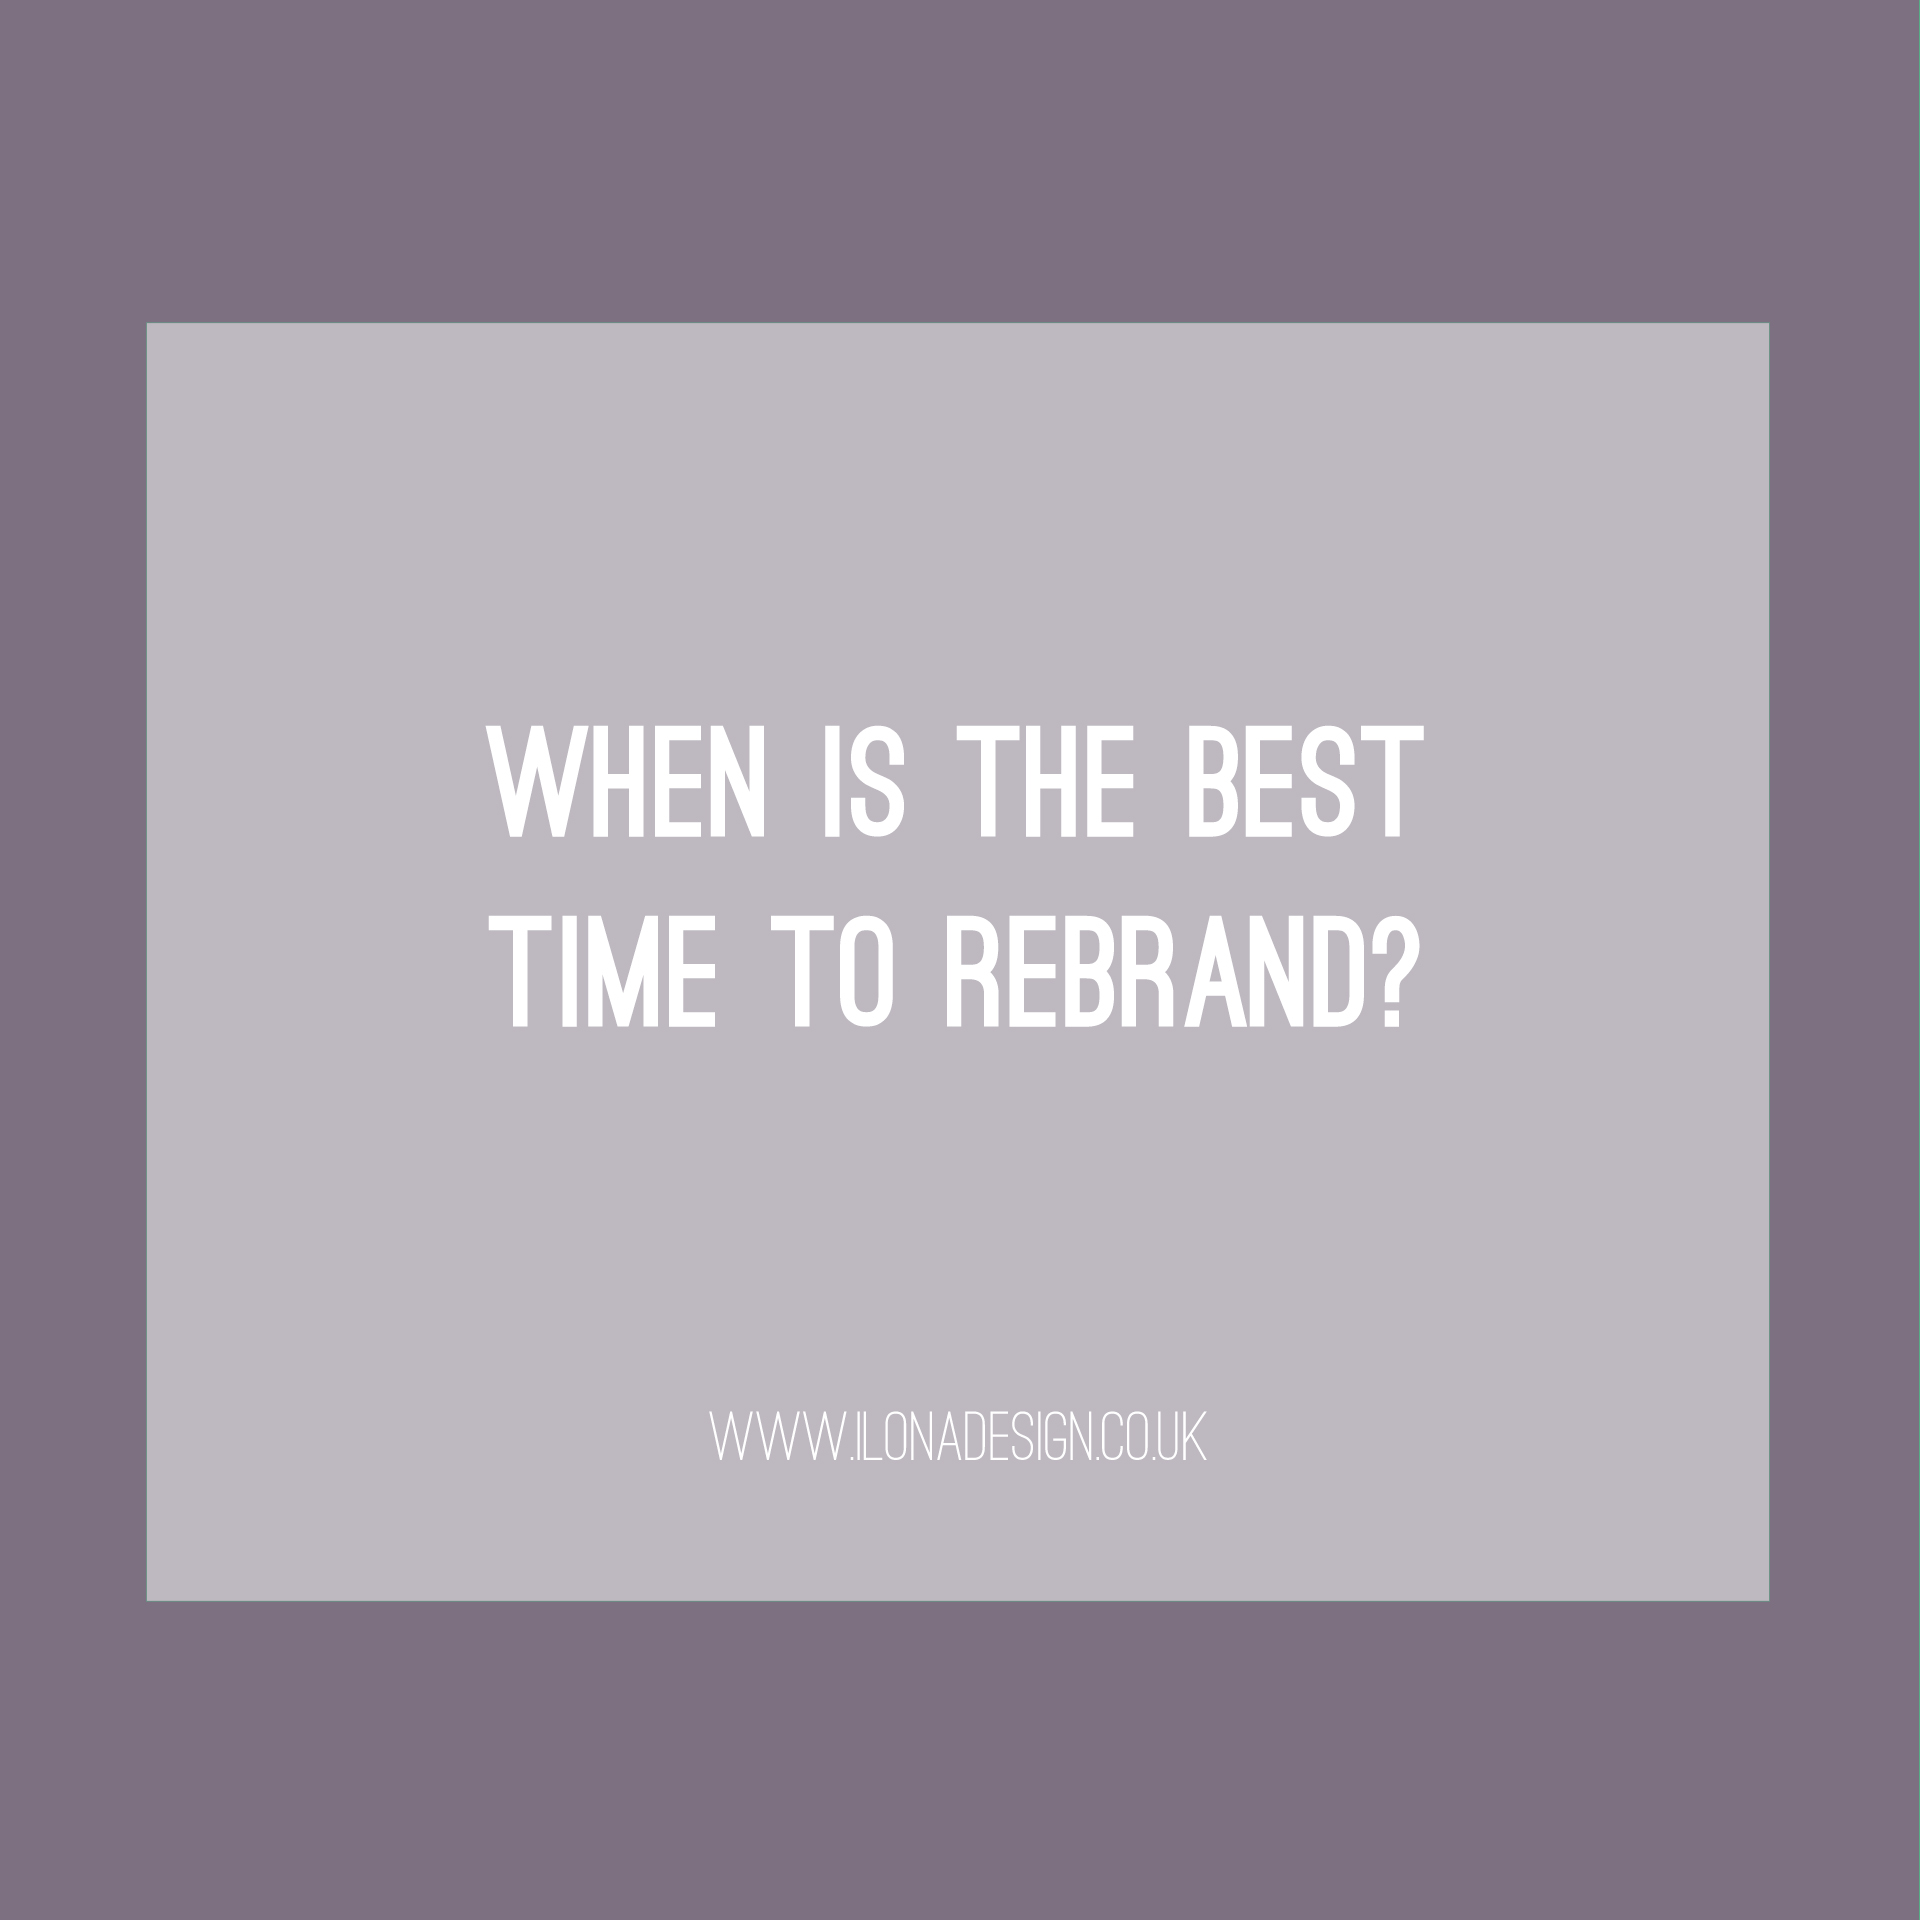 When is the best time to re-brand?